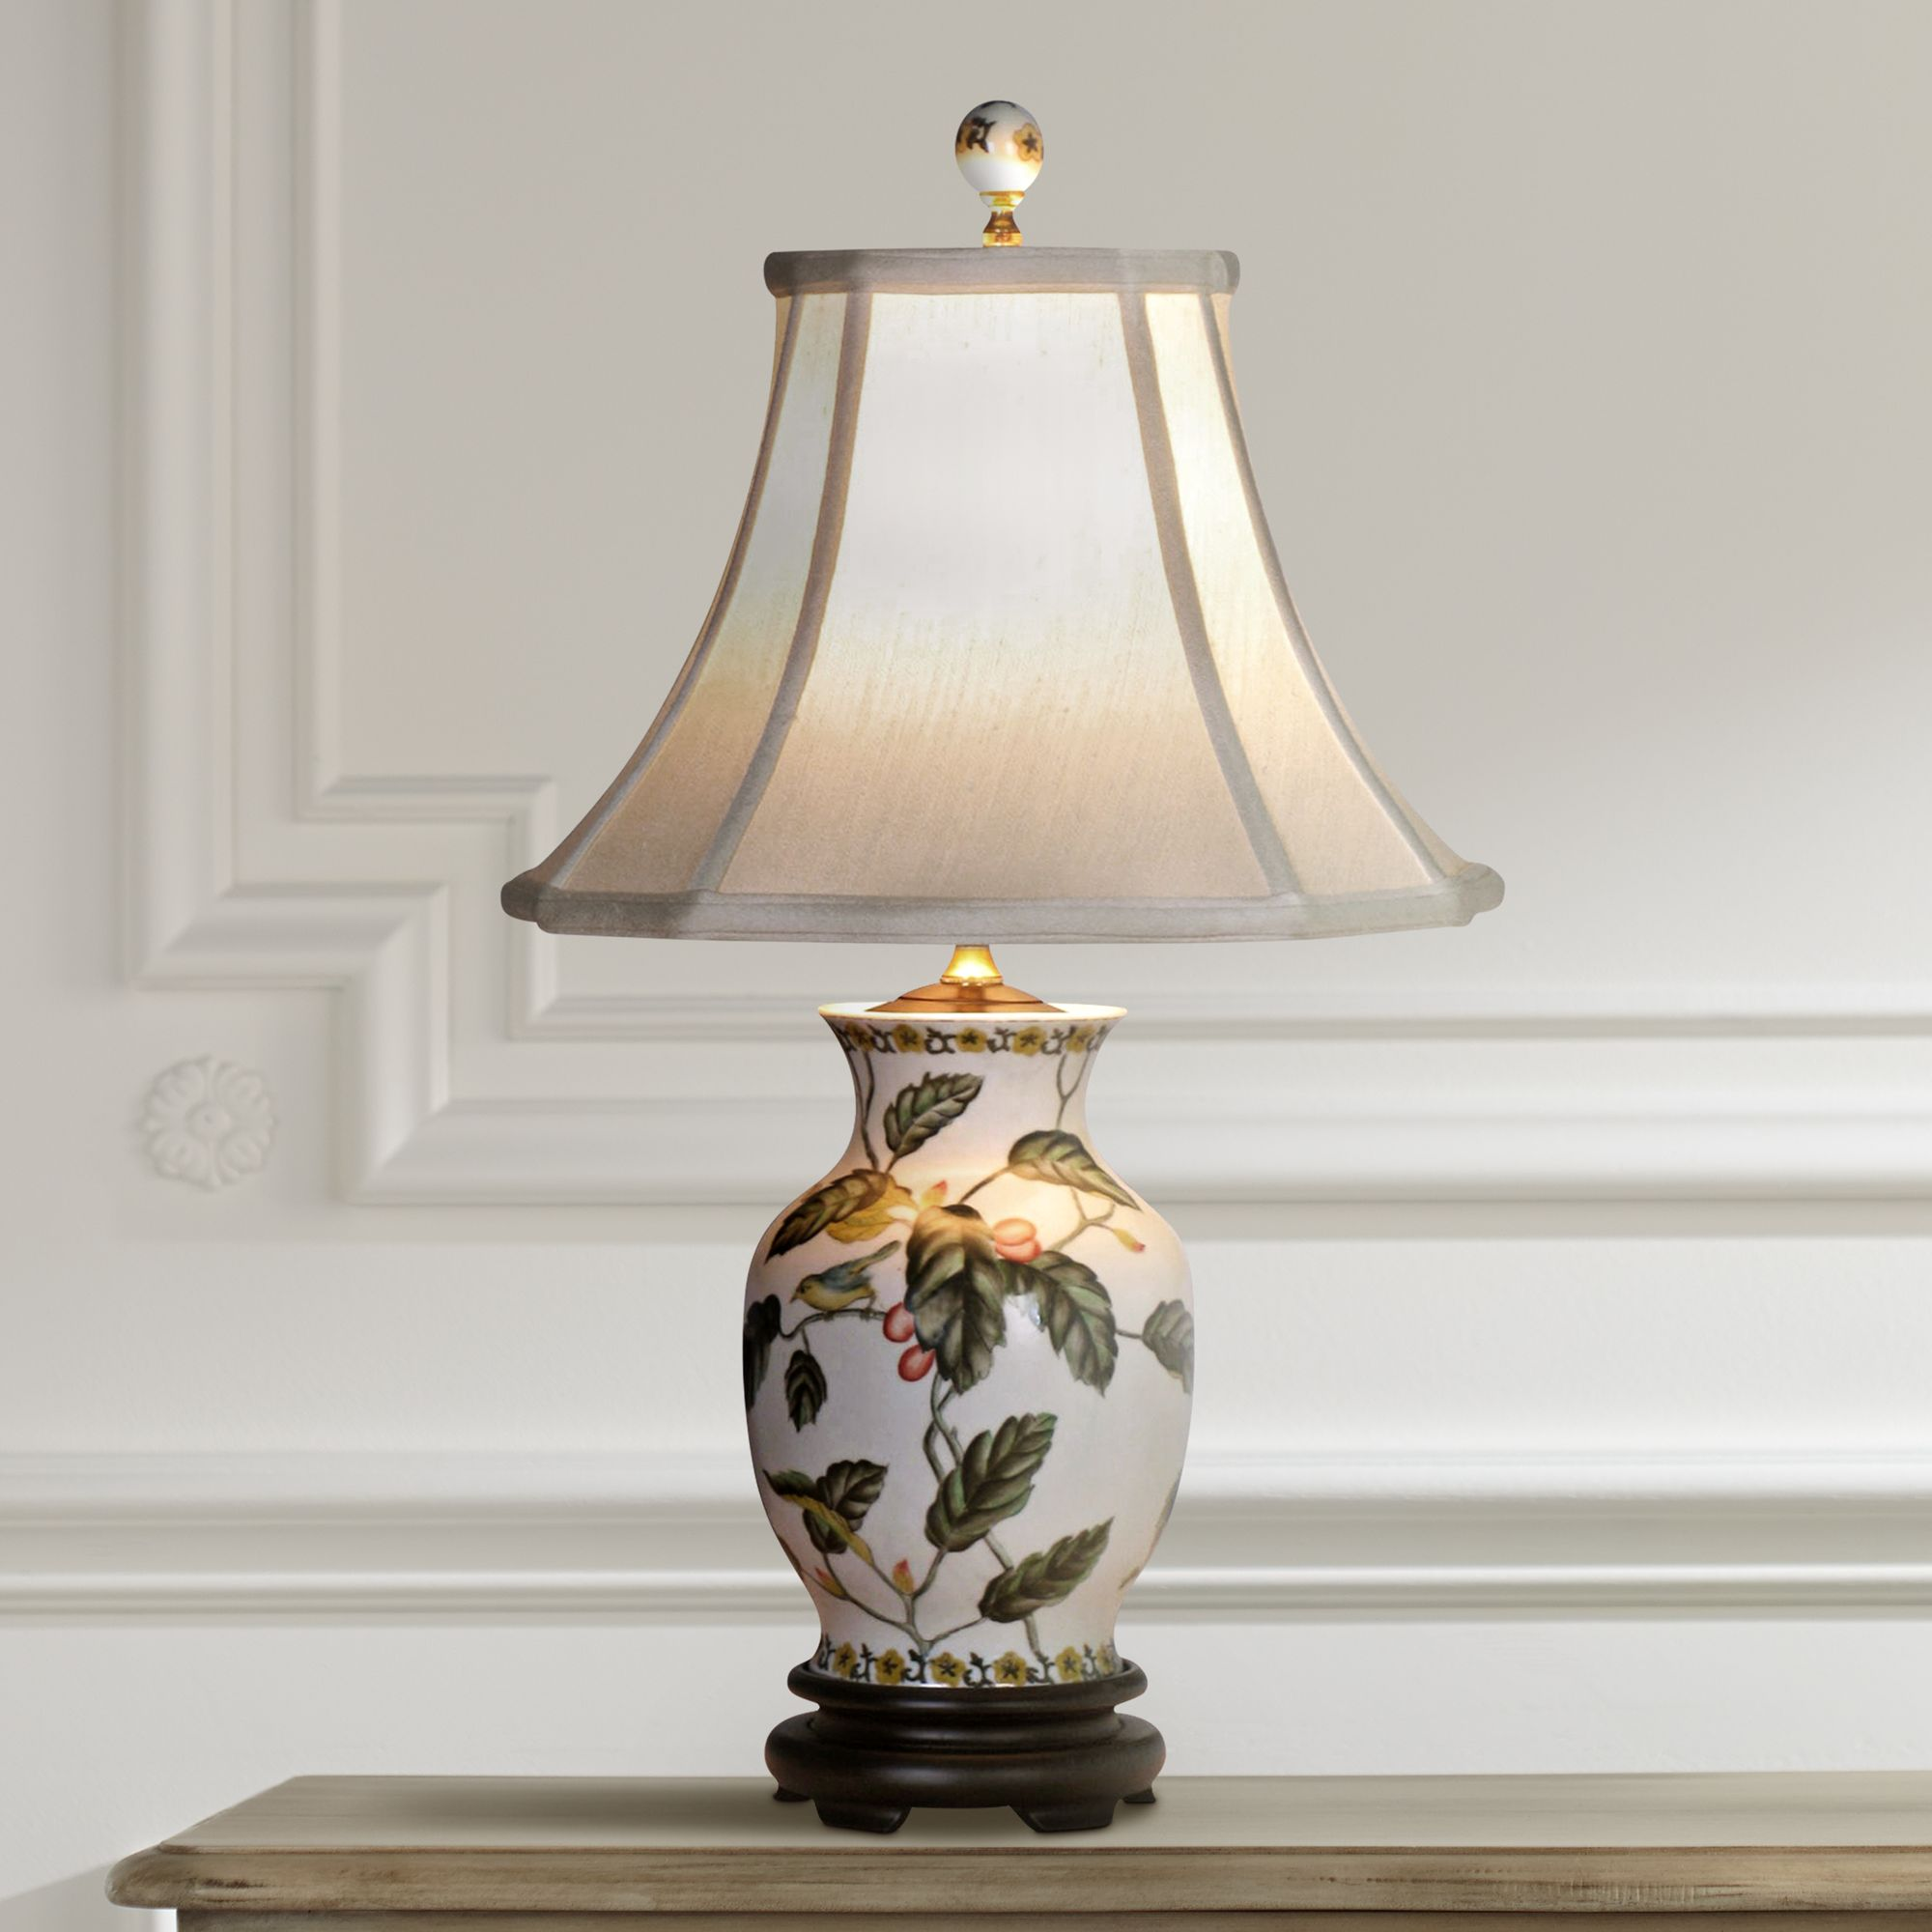 Leaf Motif Porcelain Jar Vase Table Lamp